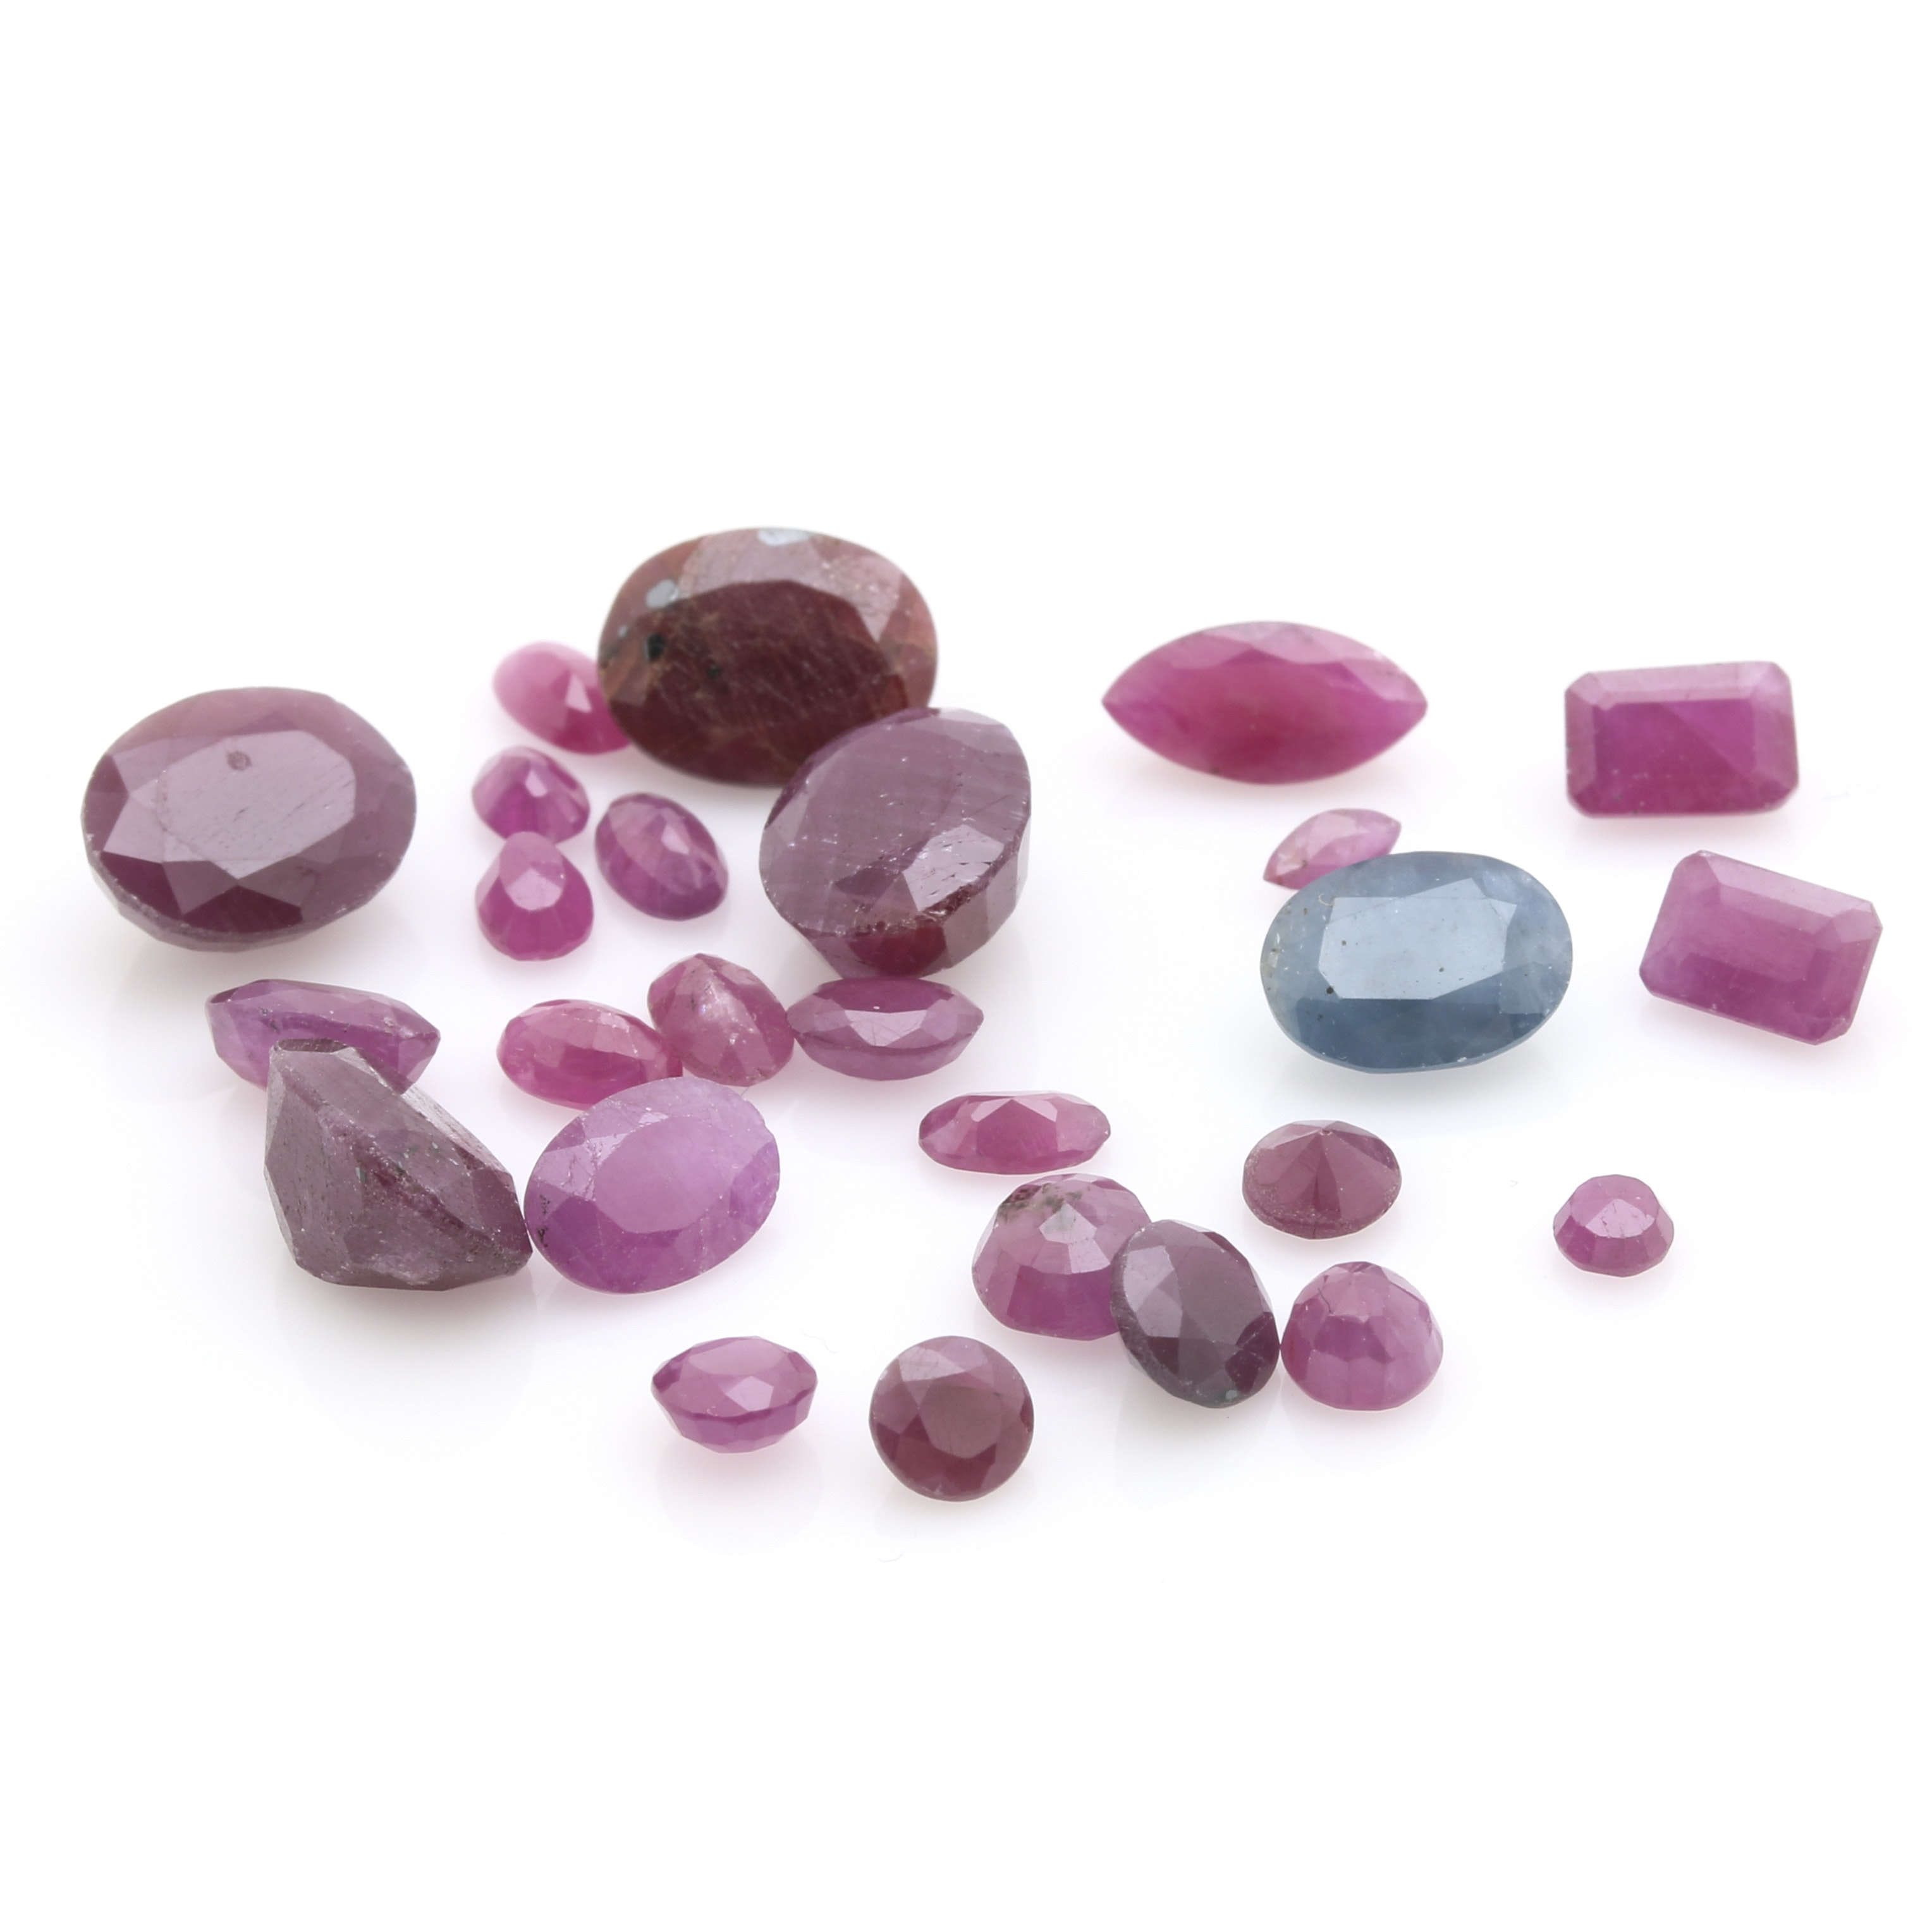 Assortment of Loose Gemstones Featuring Various Rubies and a 1.54 CT Sapphire